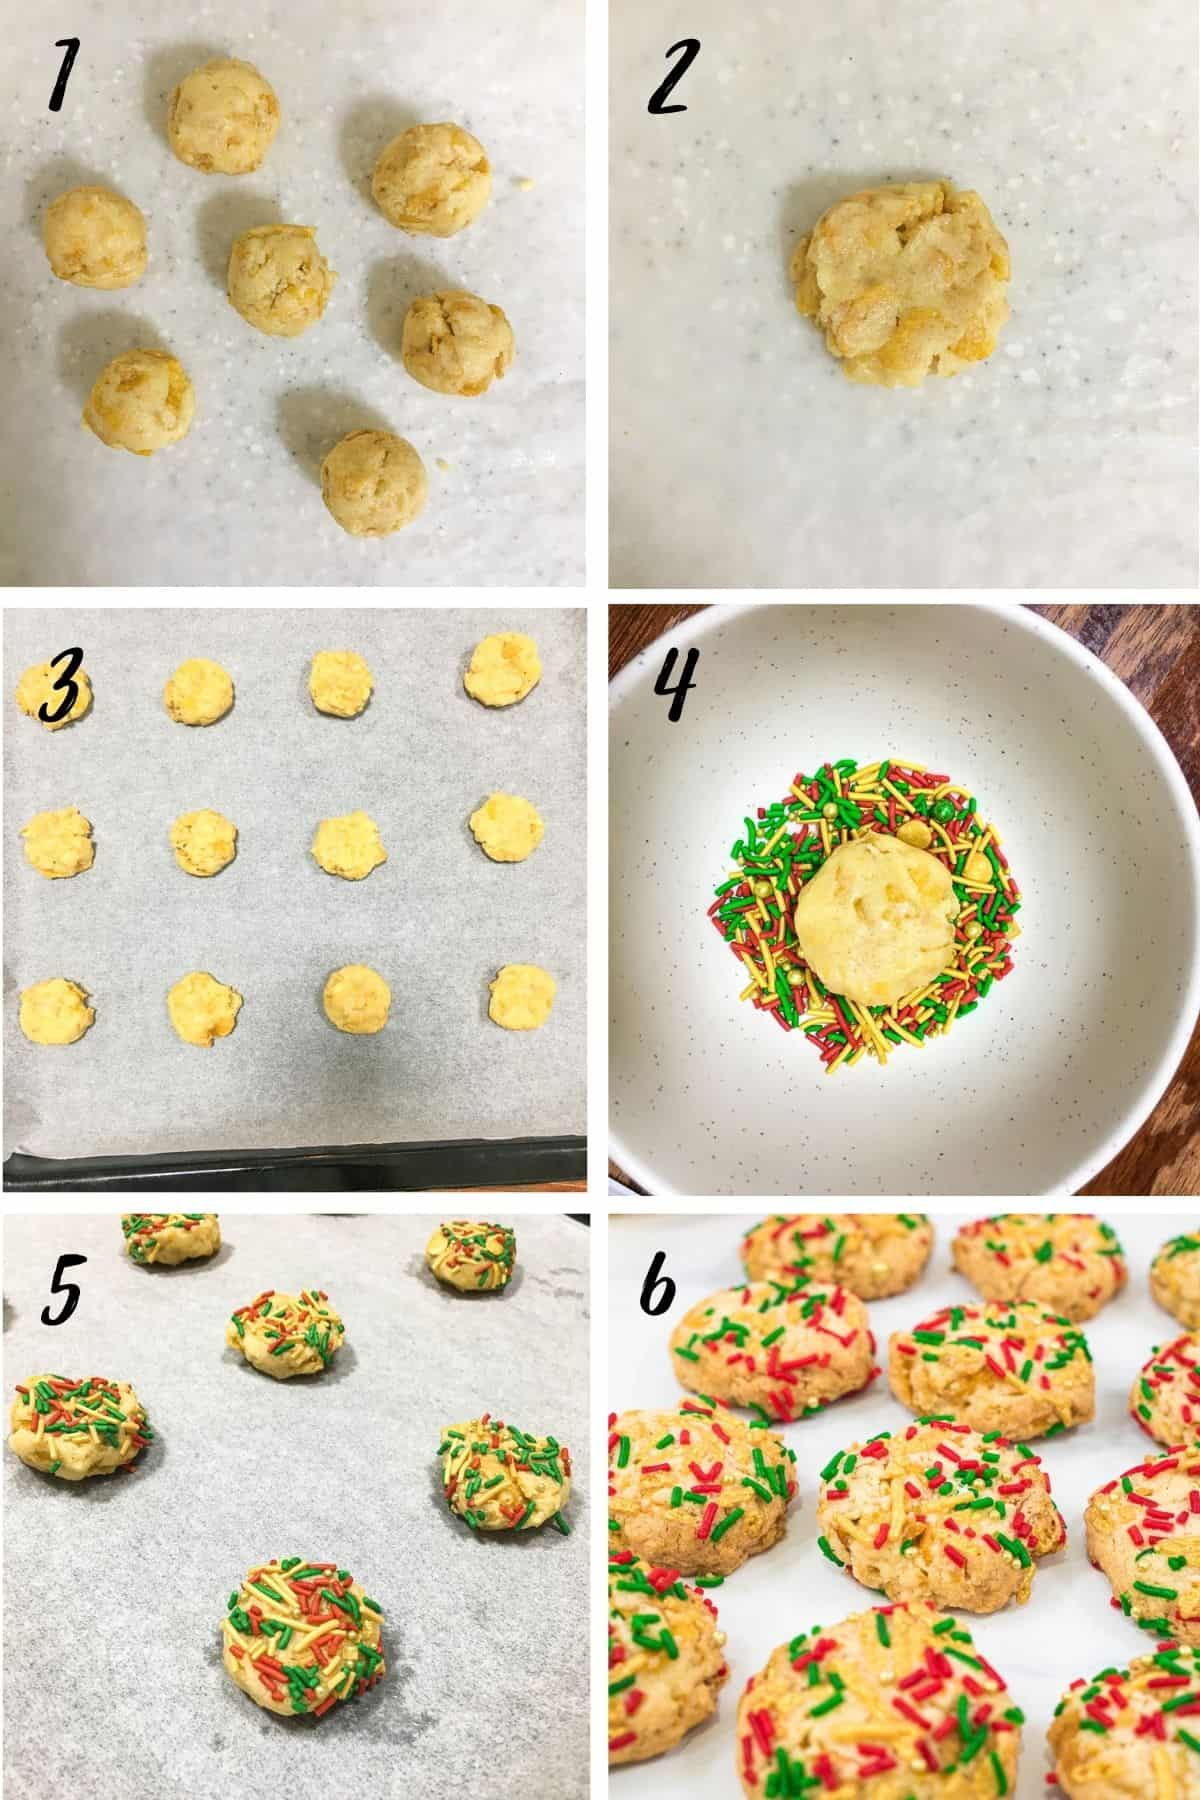 A poster of 6 images showing how to make Christmas sprinkle cookies